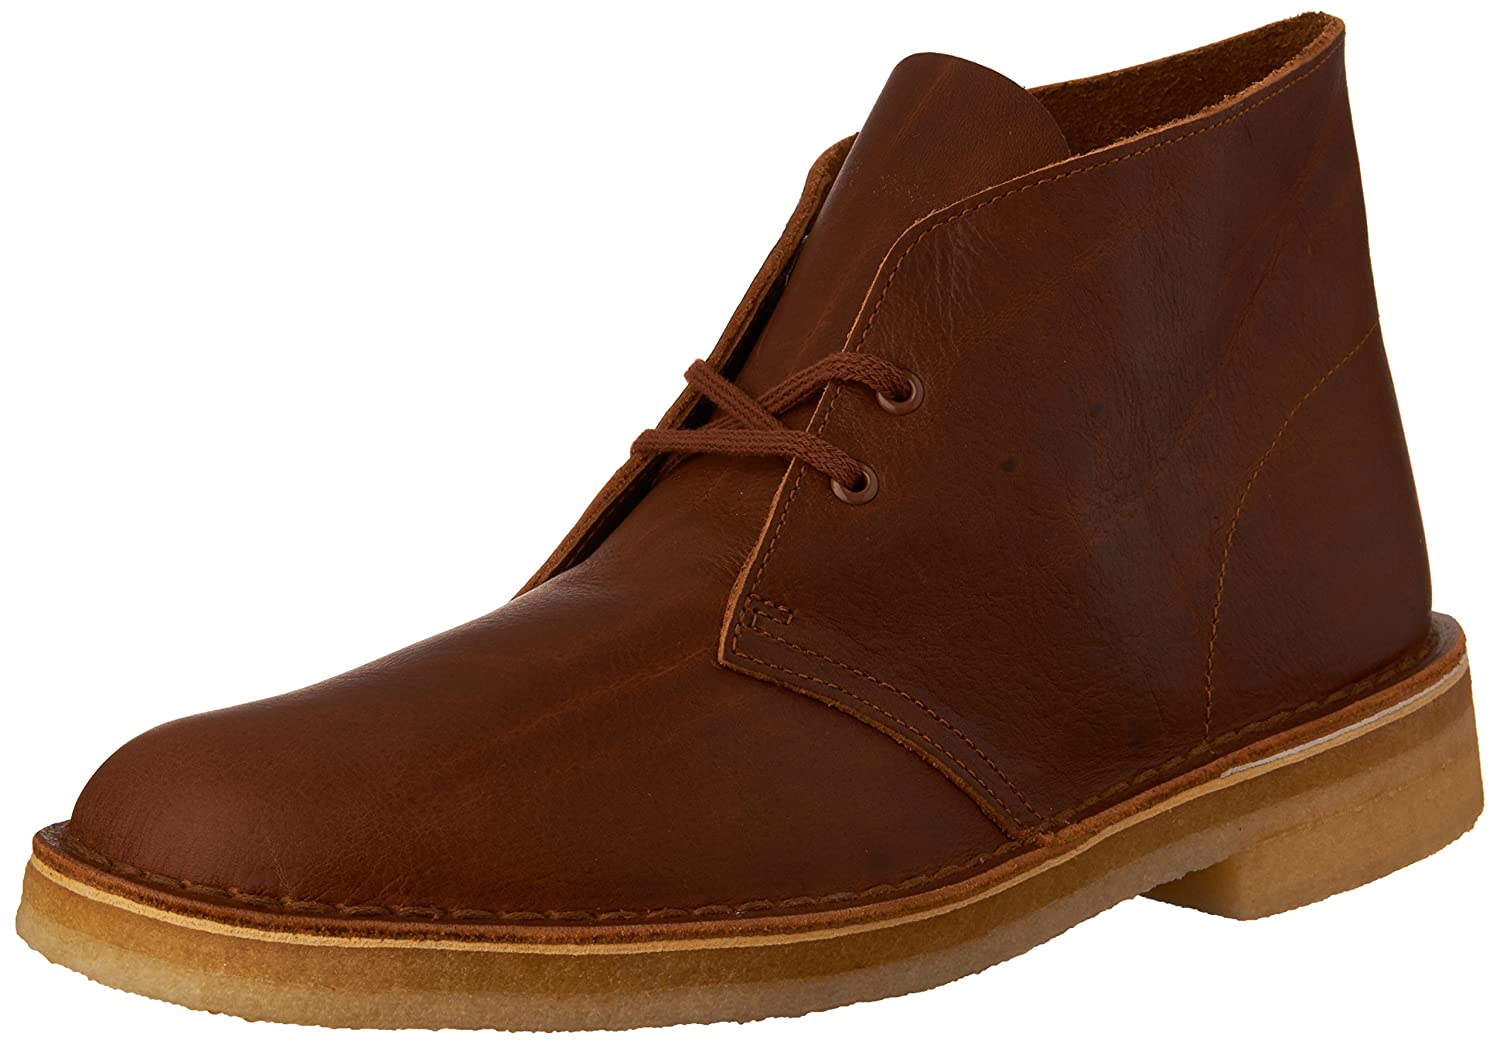 Amber Tumbled Leather Clarks Men's Desert Boot Ankle Boots